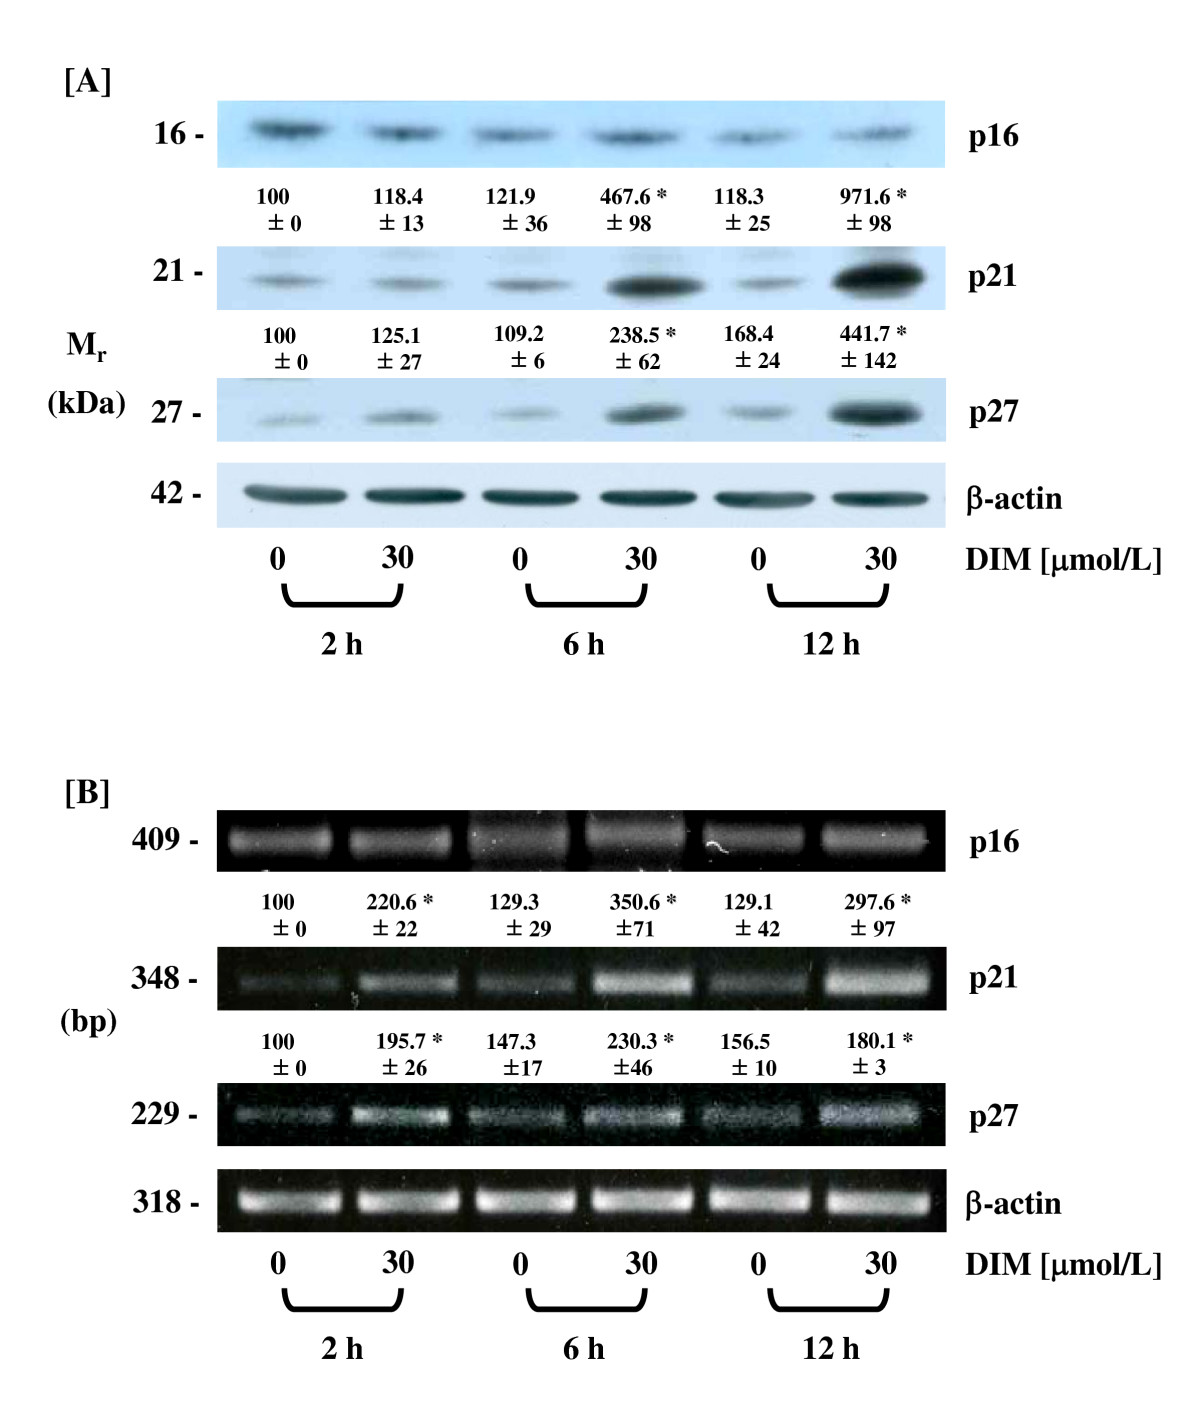 http://static-content.springer.com/image/art%3A10.1186%2F1471-230X-9-39/MediaObjects/12876_2008_Article_331_Fig3_HTML.jpg